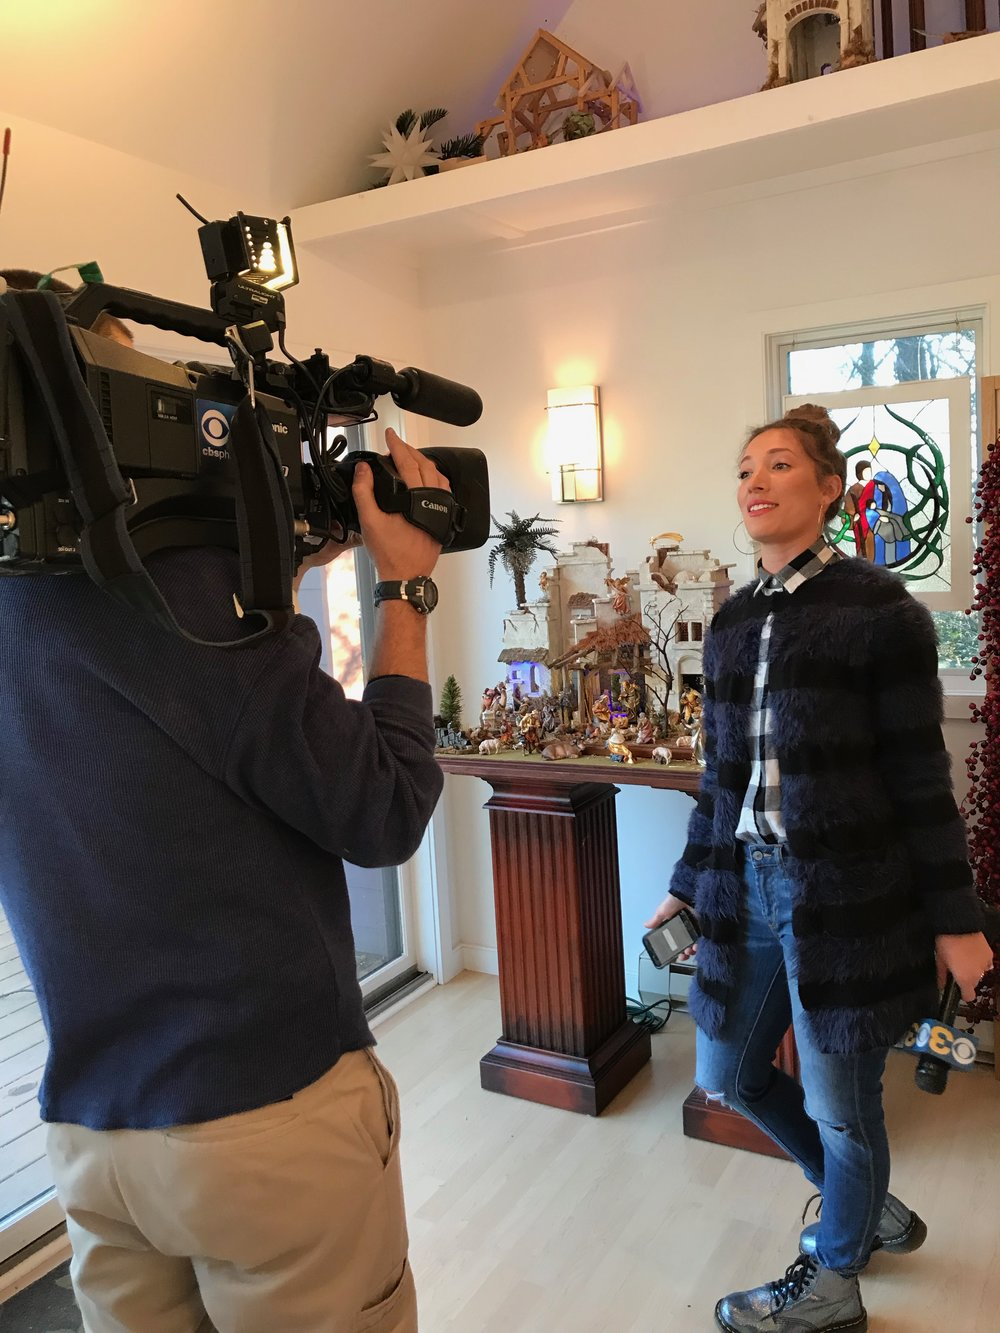 Tori Woodill from CBS3 Philadelphia  doing a feature piece on Navidad Nativities…filmed in the Sanctuary Ateliere Studio.